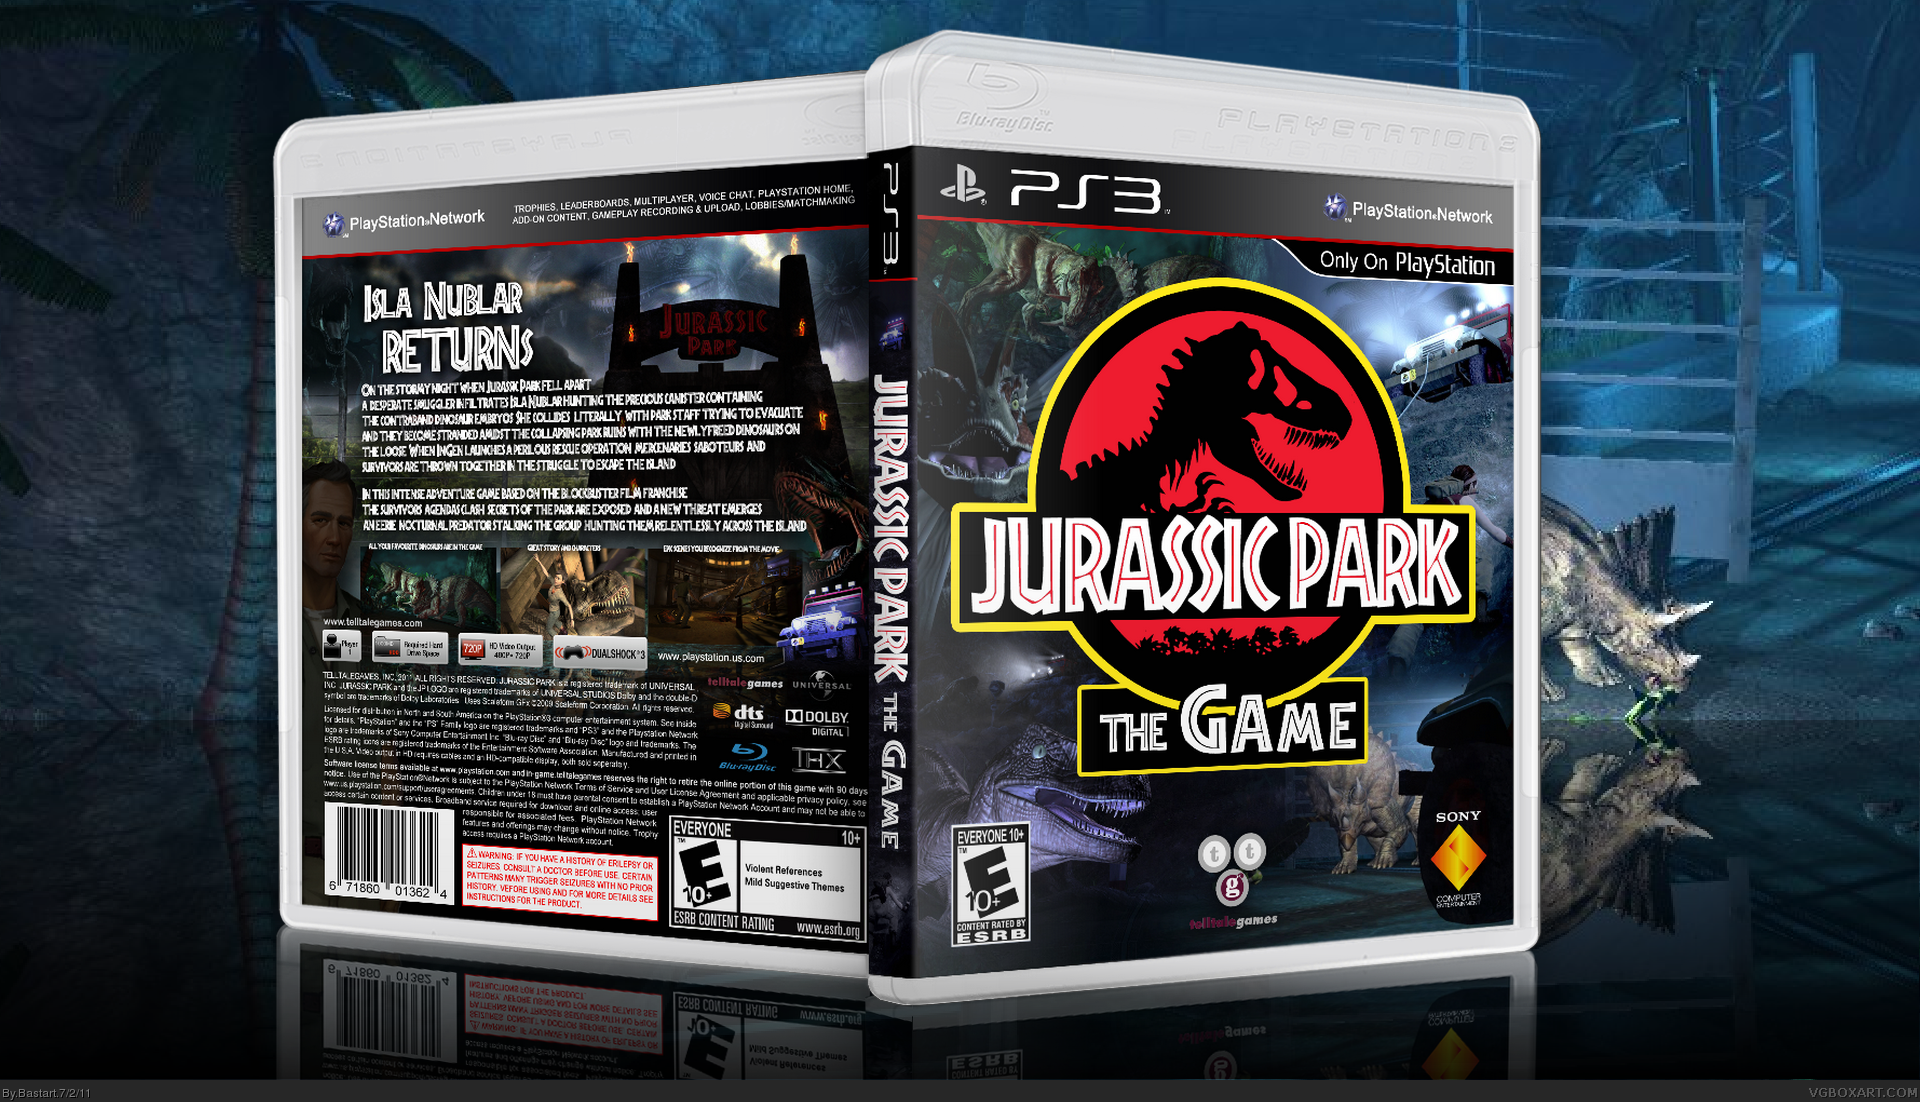 jurassic park the game playstation 3 box art cover by bastart